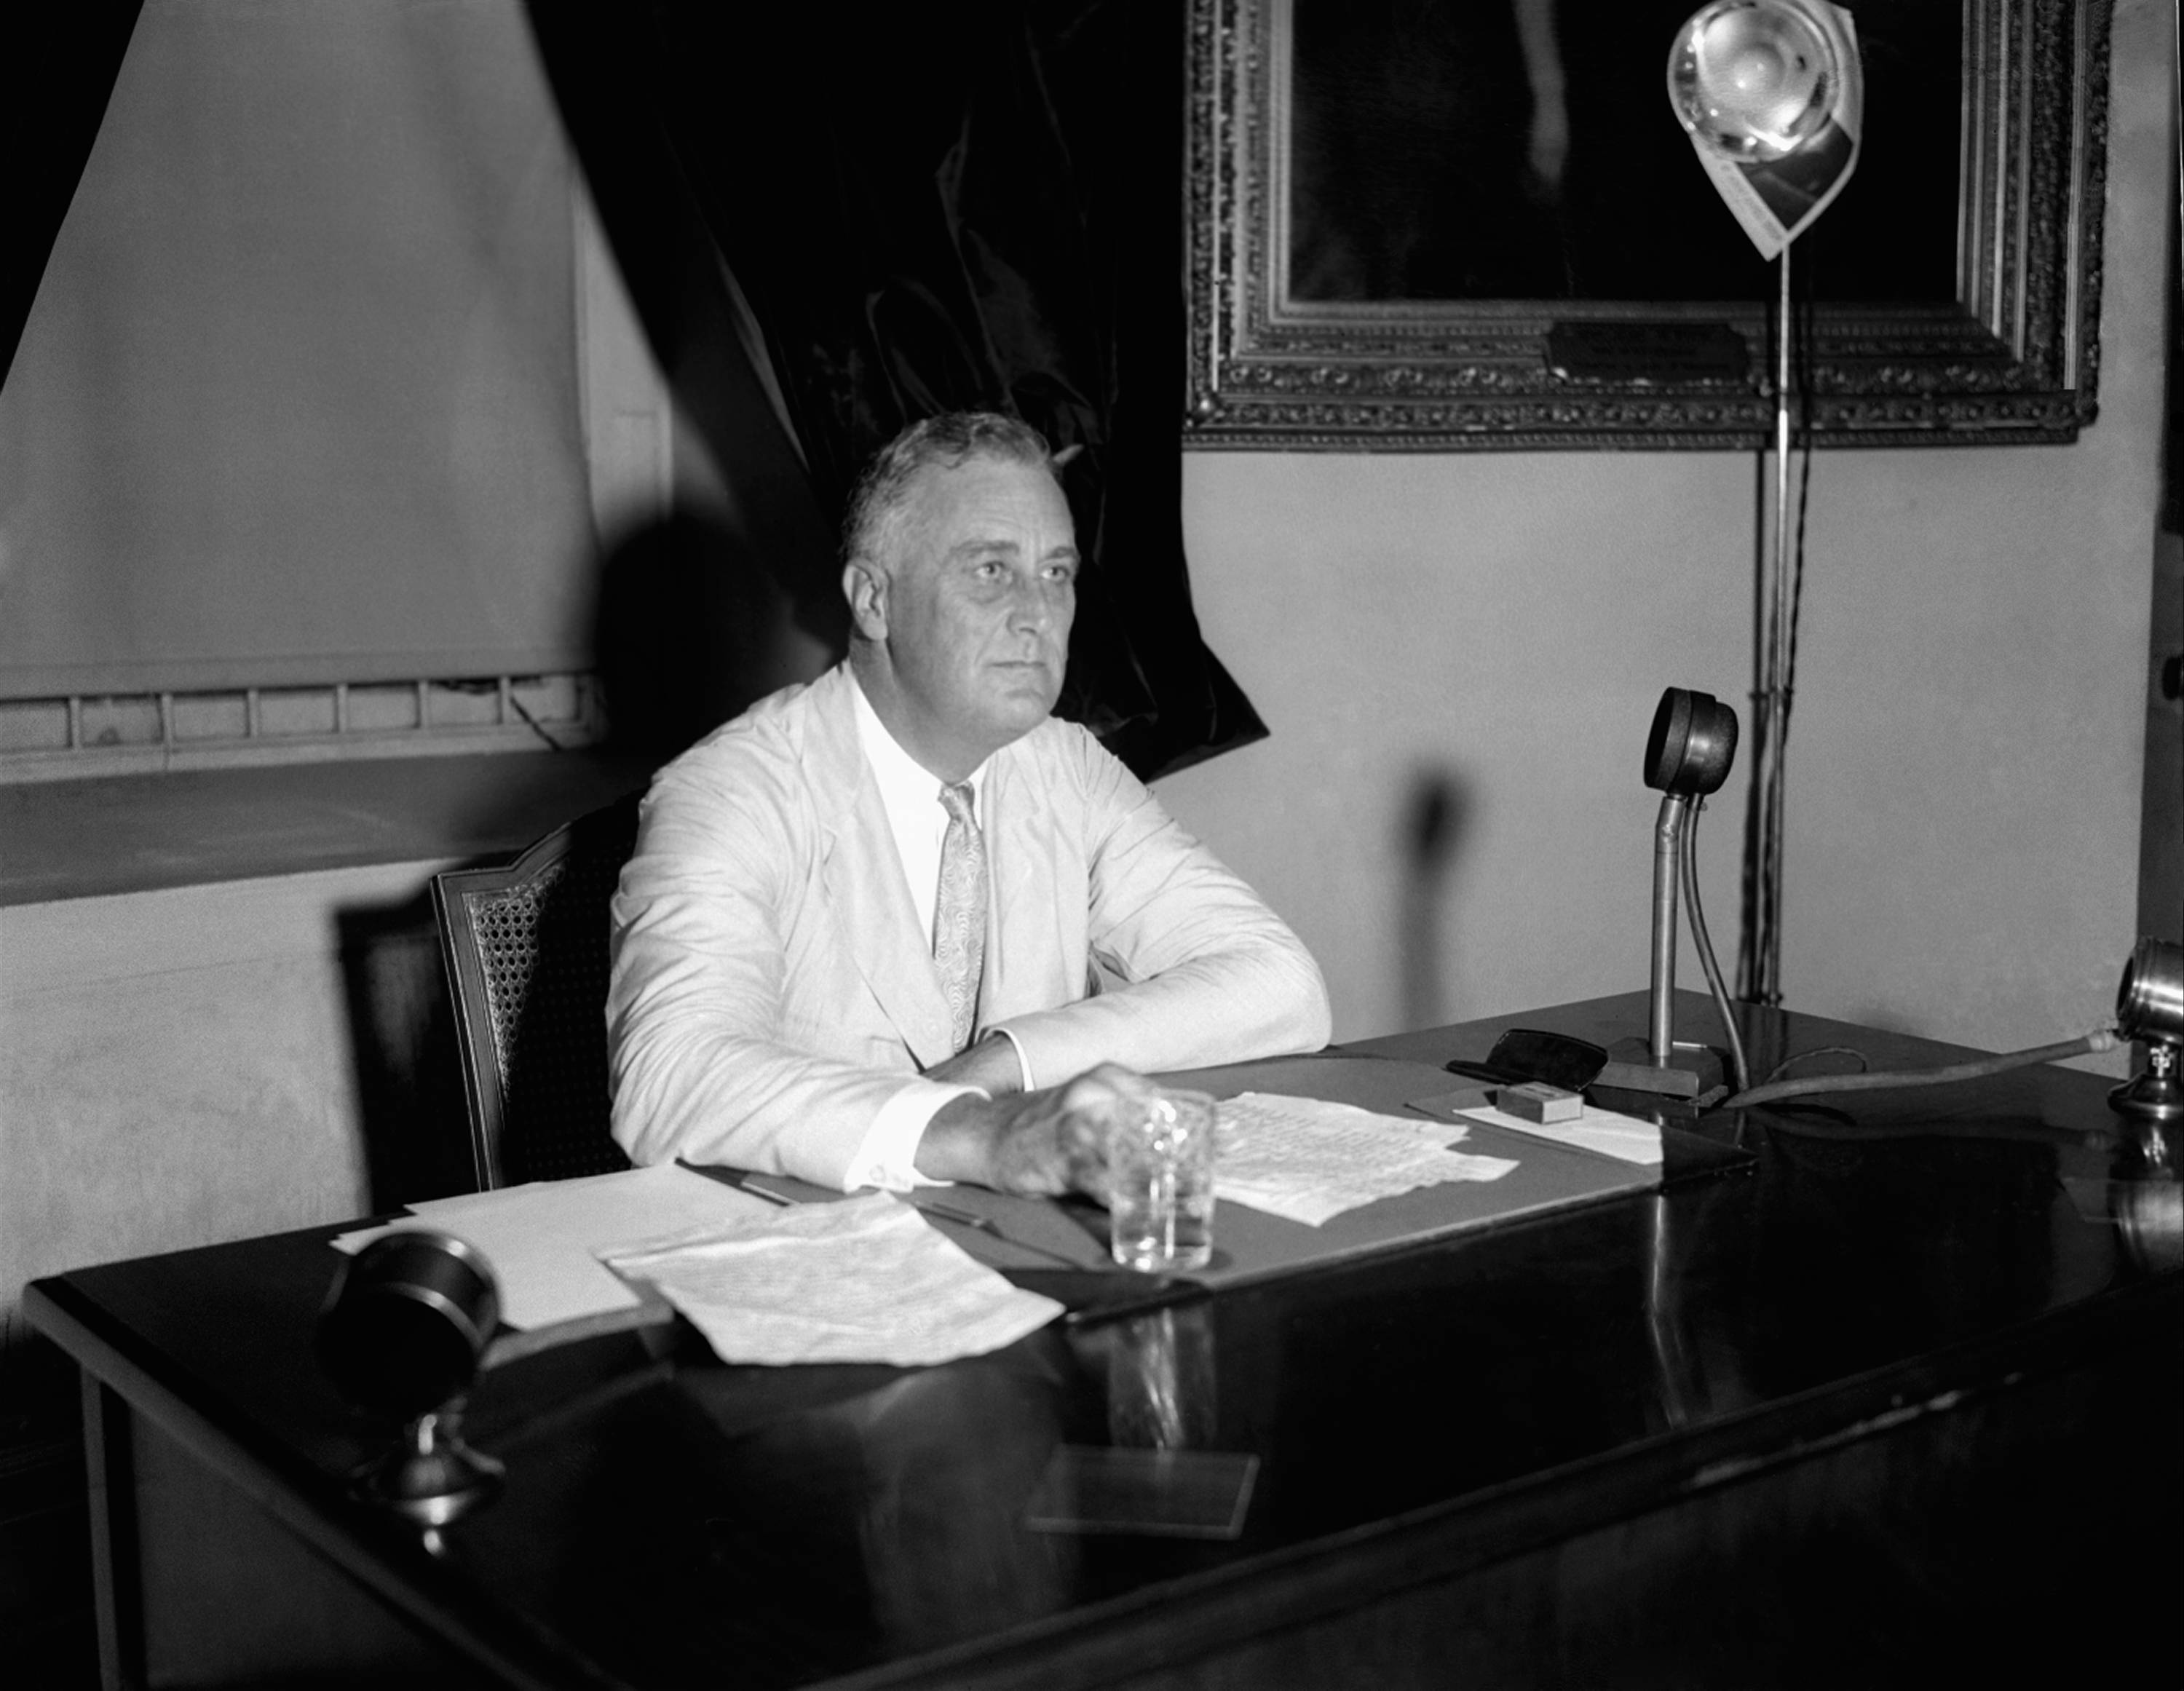 This July 24, 1933 file photo shows President Franklin D. Roosevelt appealing to the nation via radio for immediate enrollment of all employers under the blanket agreement to raise wages and create jobs, in Washington. When the Senate debates a Democratic proposal to raise the federal minimum wage, some workers won't benefit even if lightning strikes and the long-shot effort prevails.